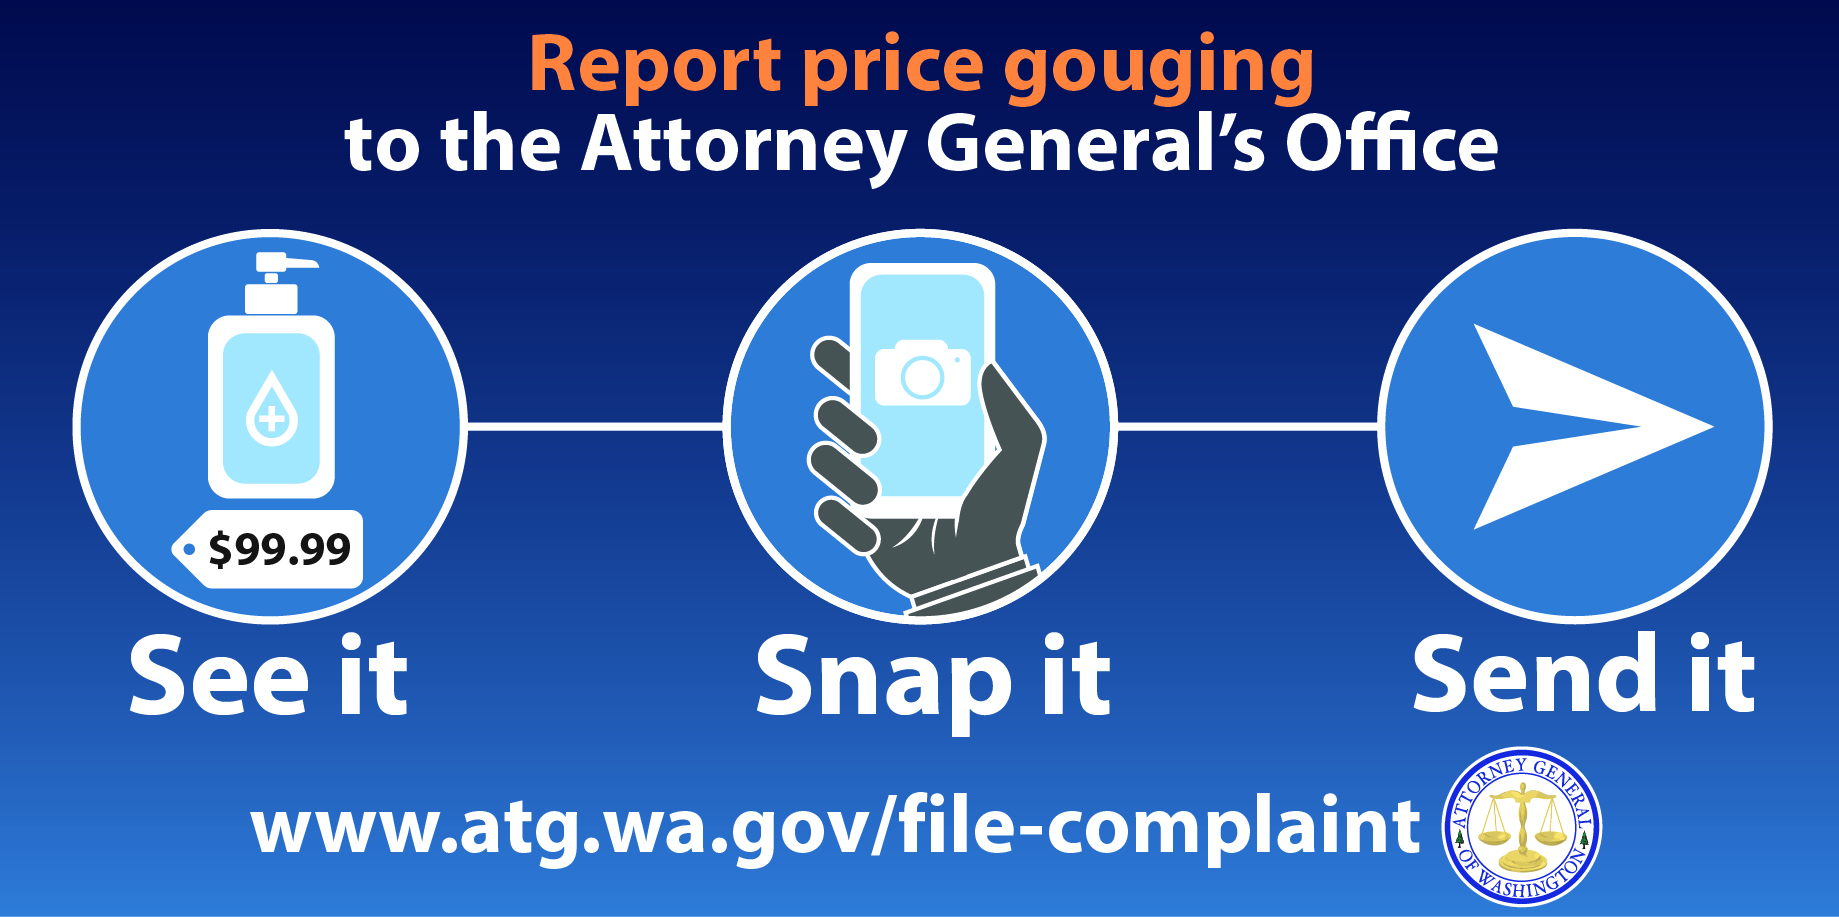 file a price gouging complaint